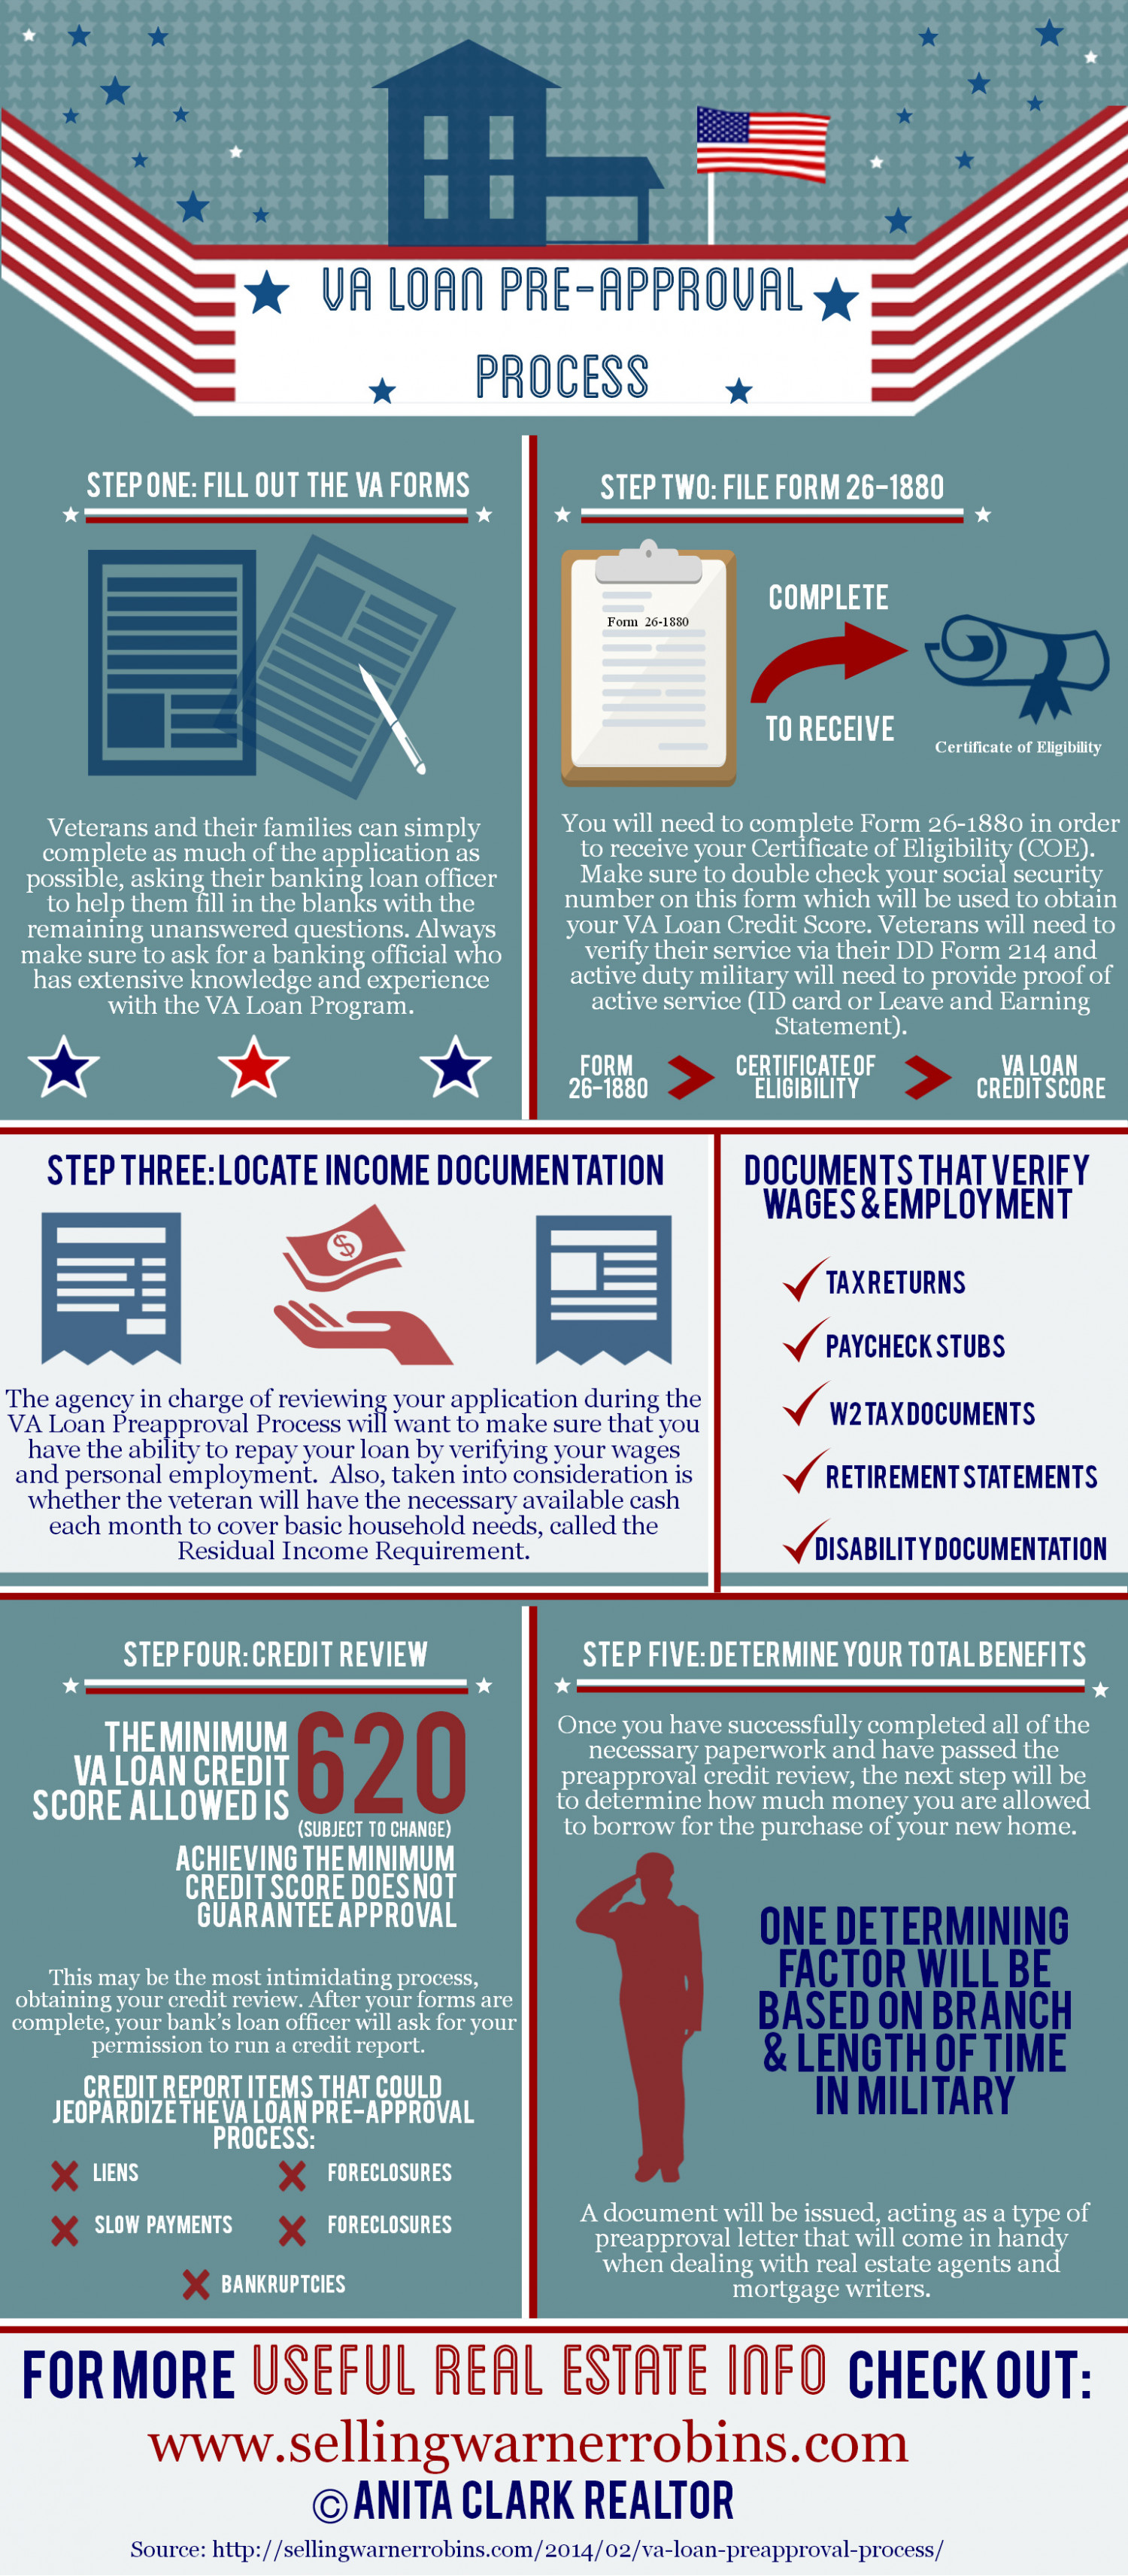 Va loan pre approval process visual va loan pre approval process infographic xflitez Images